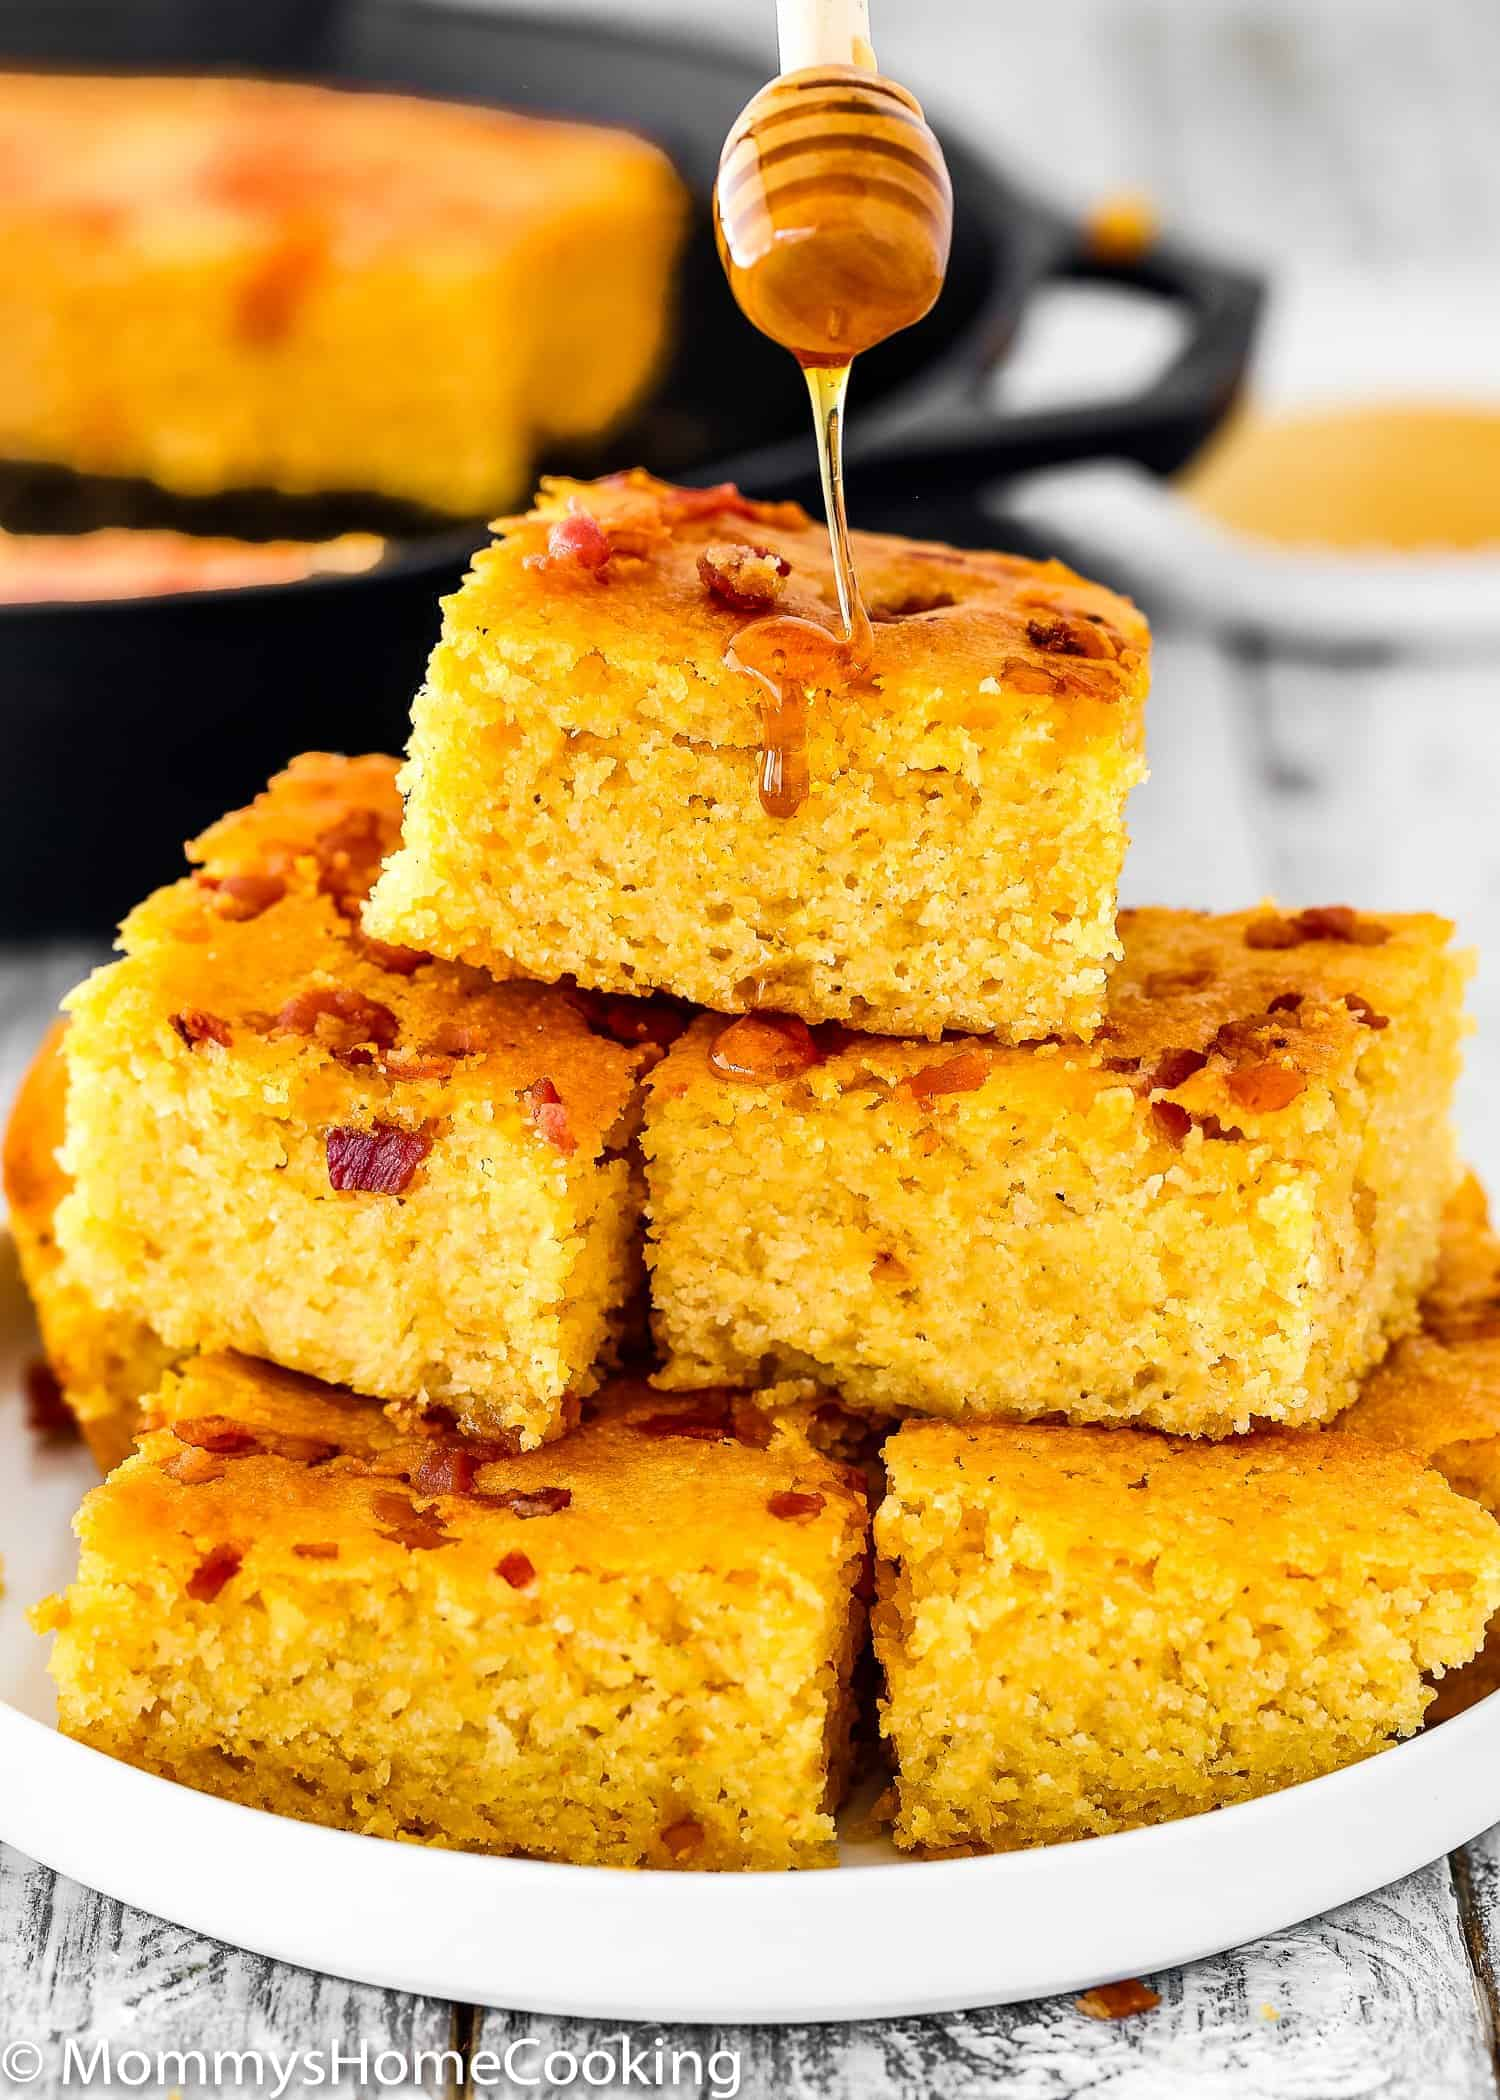 Click to learn how to make The BEST Eggless Cornbread! This eggless cornbread has a super moist, tender crumb that is not dry at all. Made with simple ingredients this effortless recipe is ready in 30 minutes! https://mommyshomecooking.com